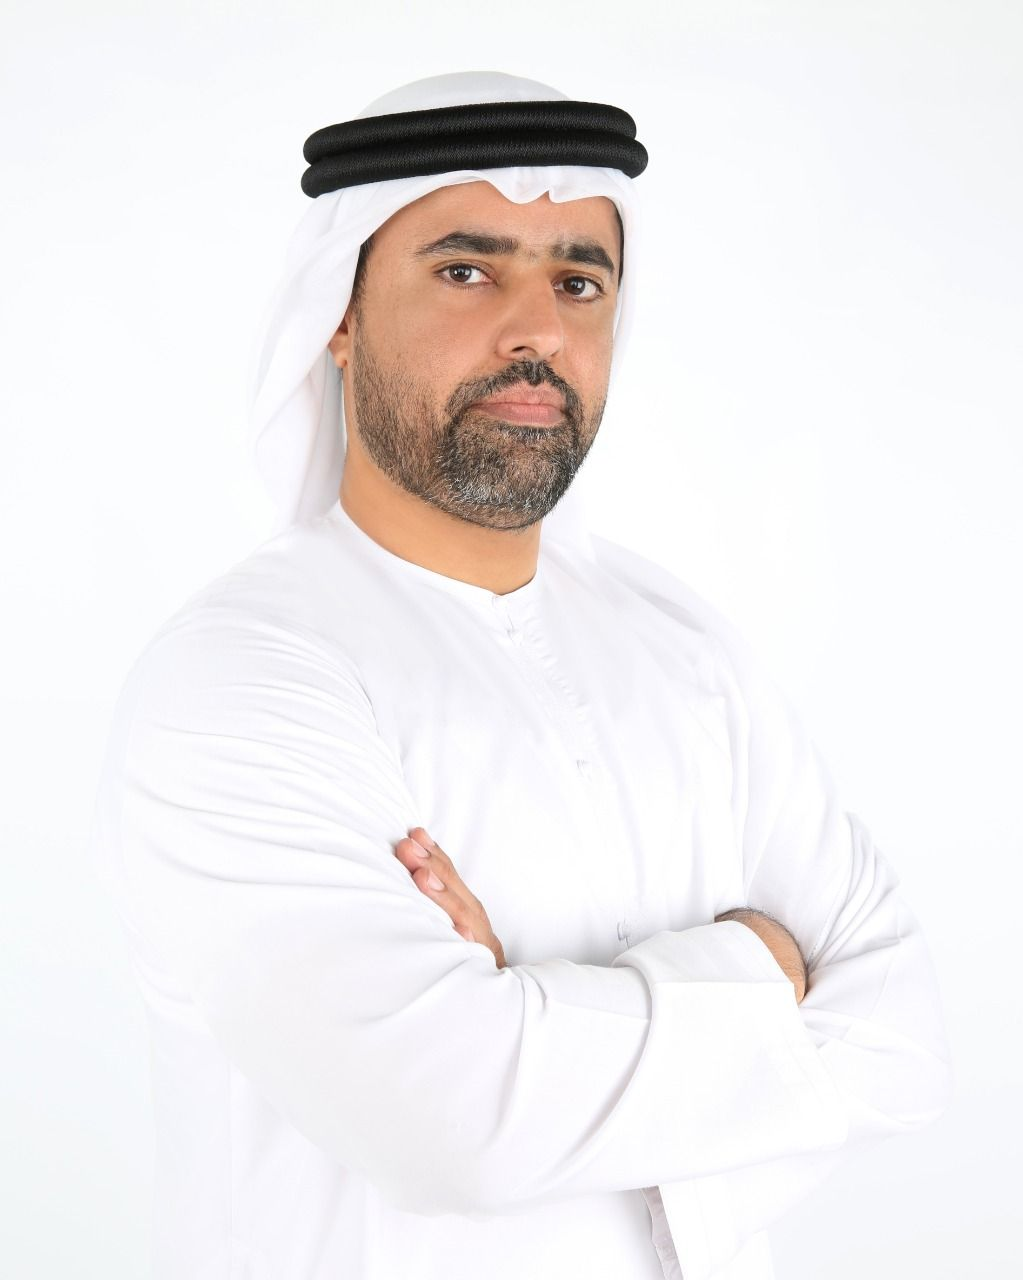 Colonel Saeed Al Hajri